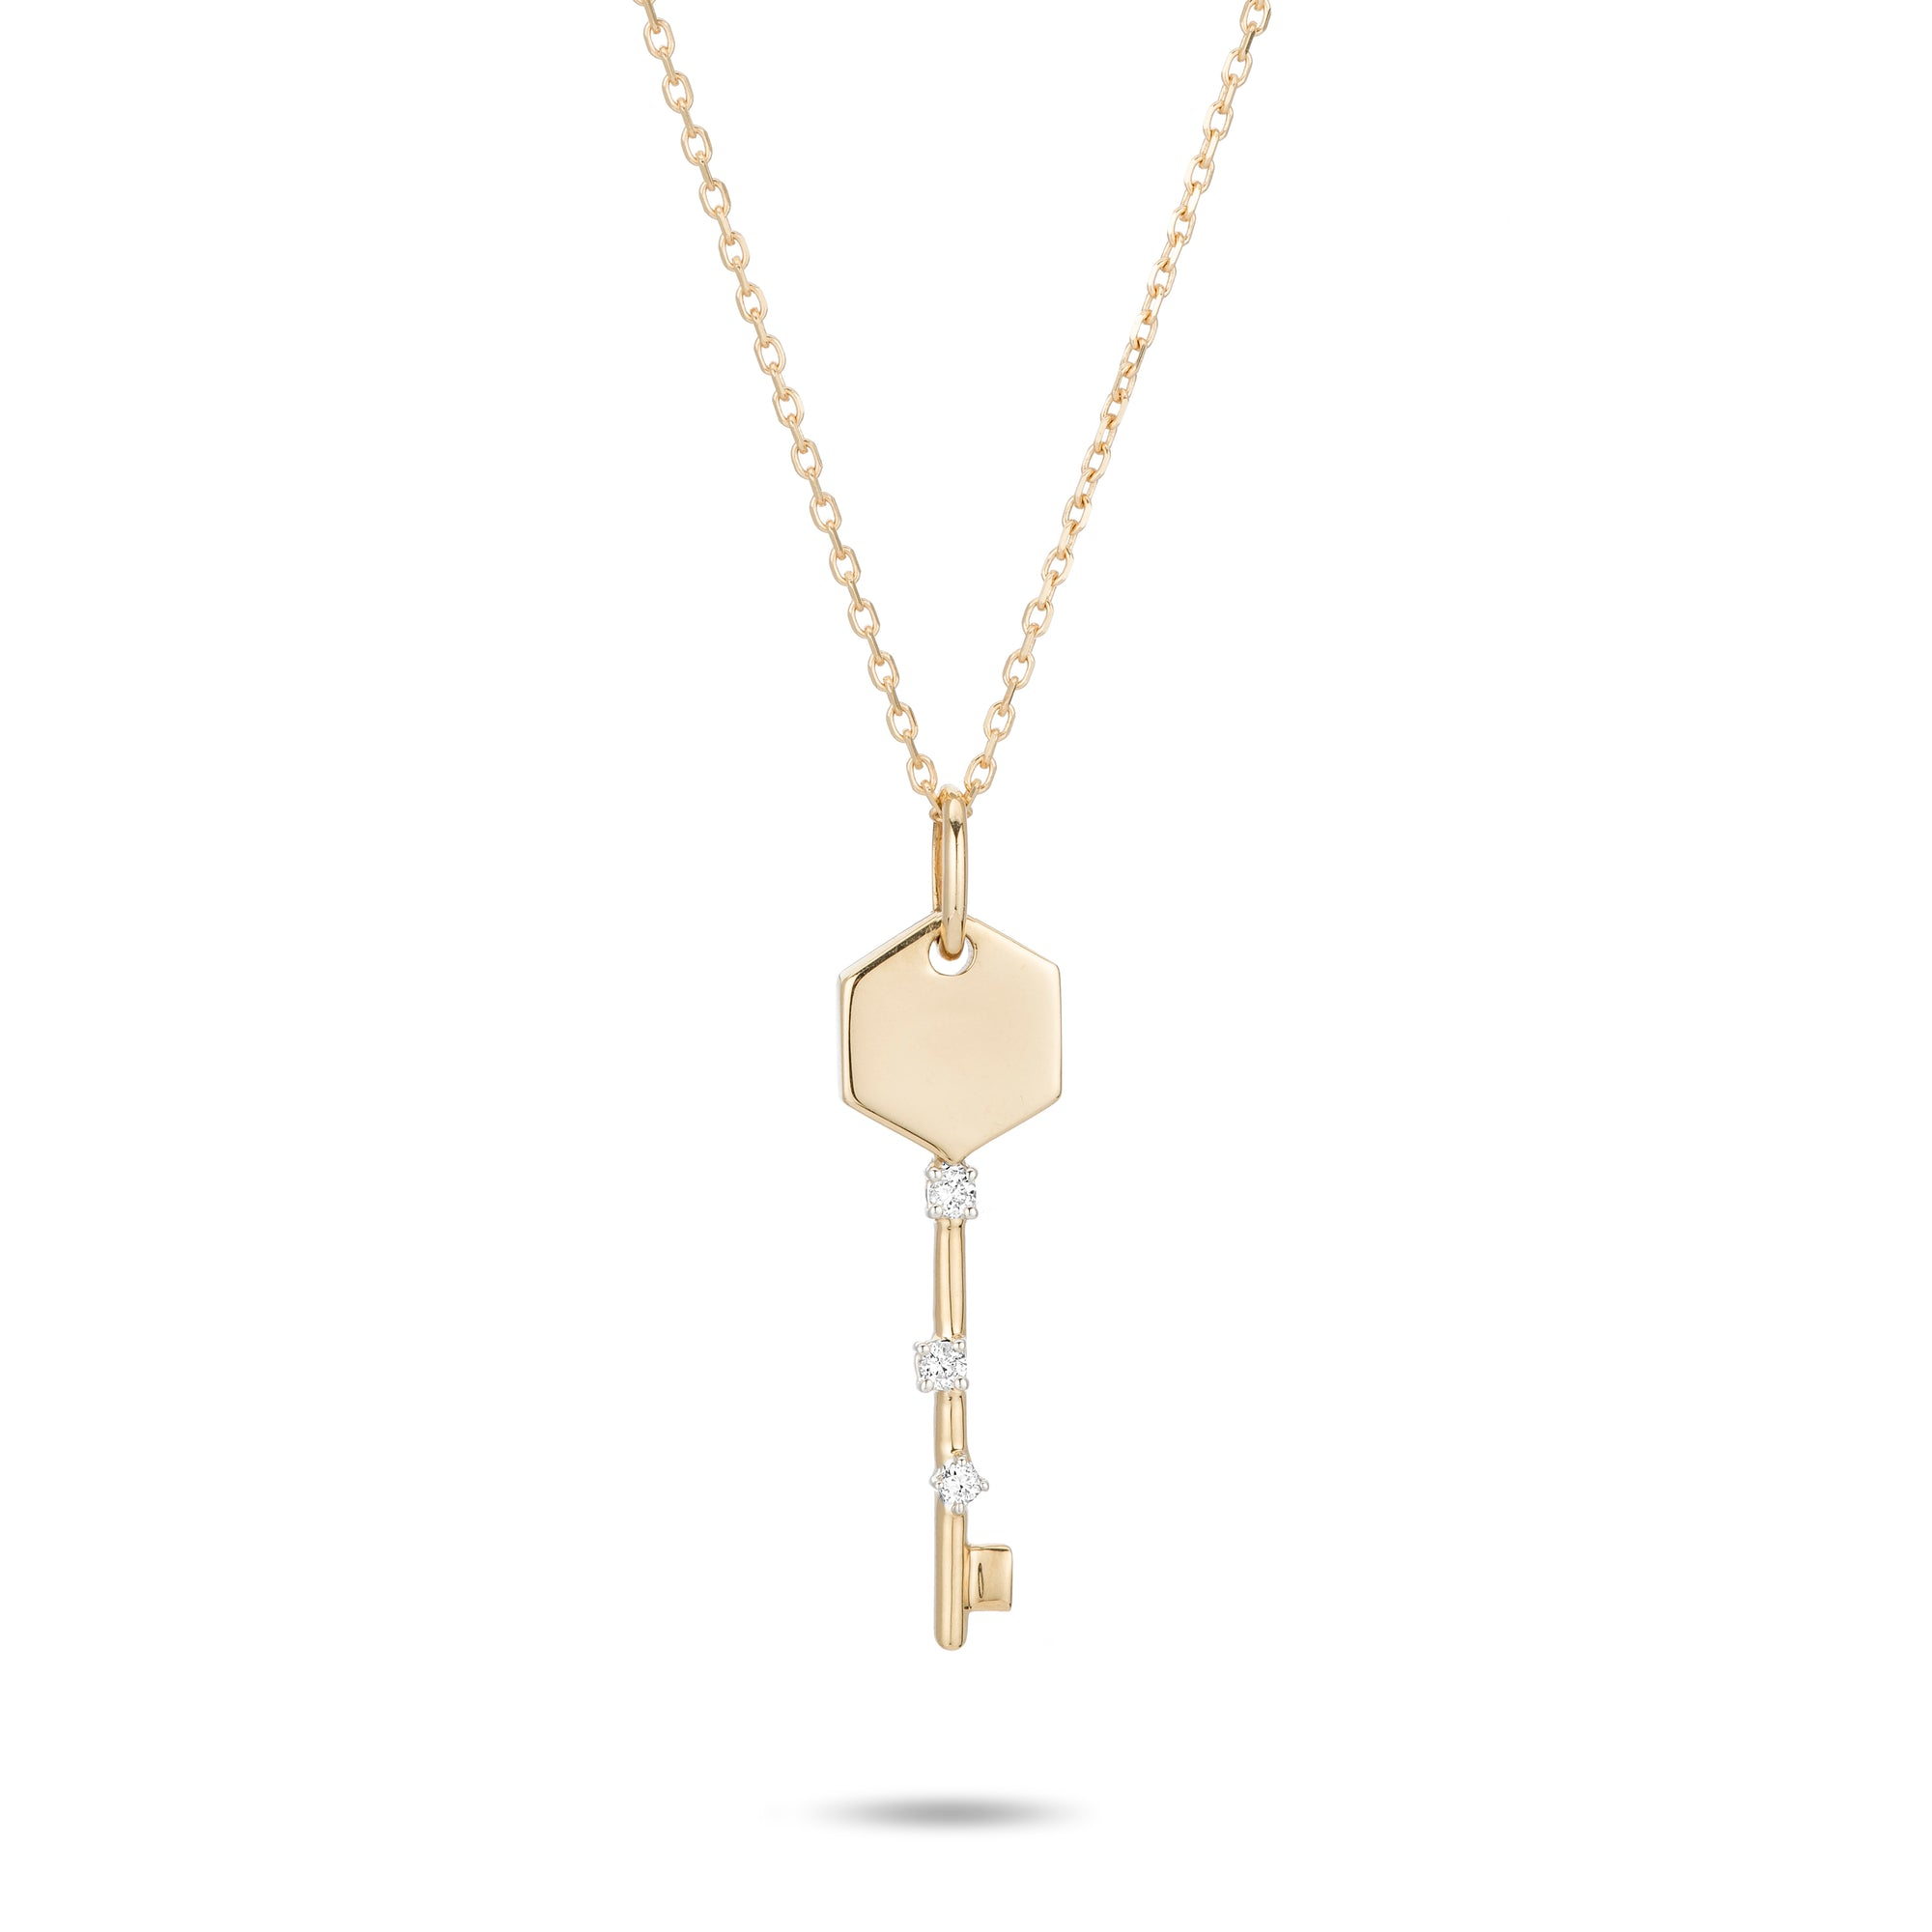 Adina Reyter Tiny Amigos Hexagon Key Necklace